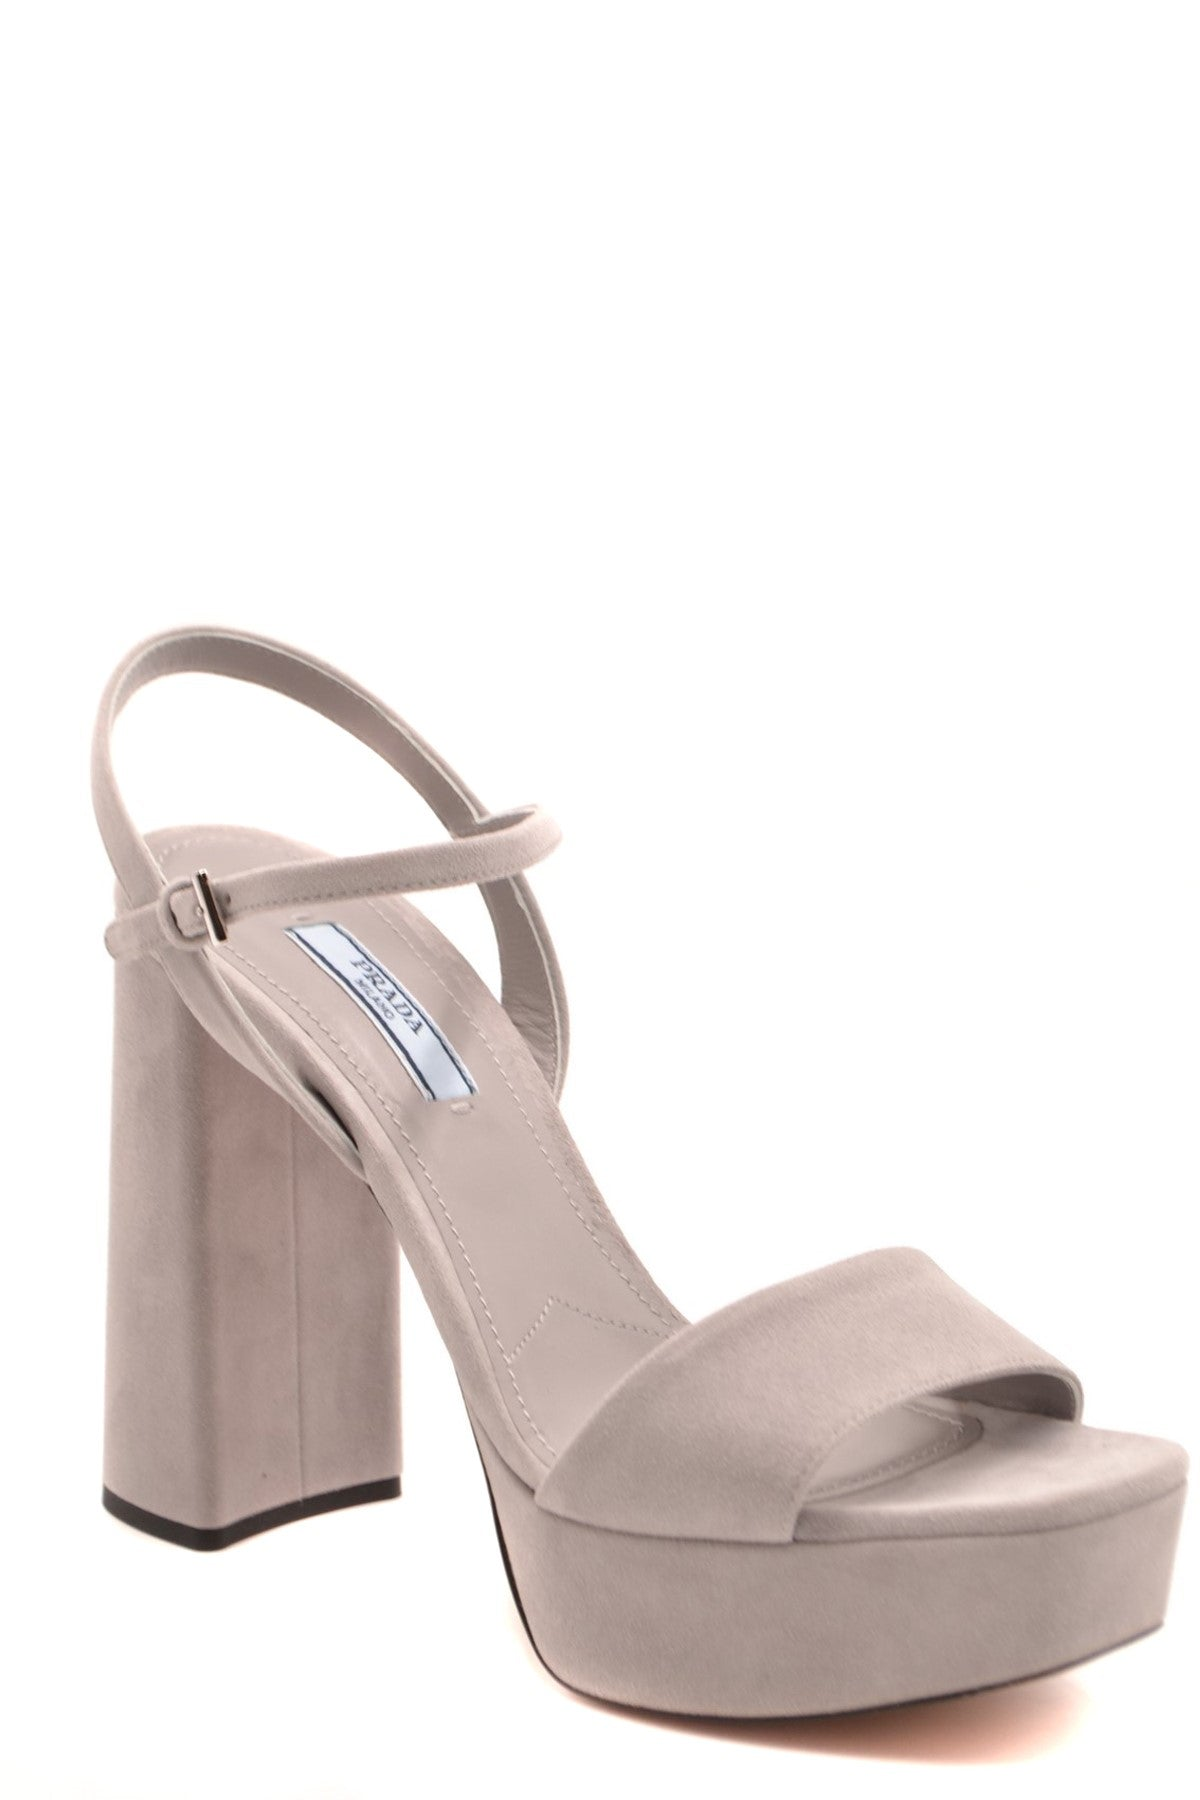 Shoes Prada-Women's Fashion - Women's Shoes - Women's Sandals-Product Details Terms: New With LabelMain Color: GrayType Of Accessory: ShoesSeason: Spring / SummerMade In: ItalyGender: WomanHeel'S Height: 12Size: EuComposition: Chamois 100%Year: 2020Manufacturer Part Number: 1Xp75A 008 F0424-Keyomi-Sook